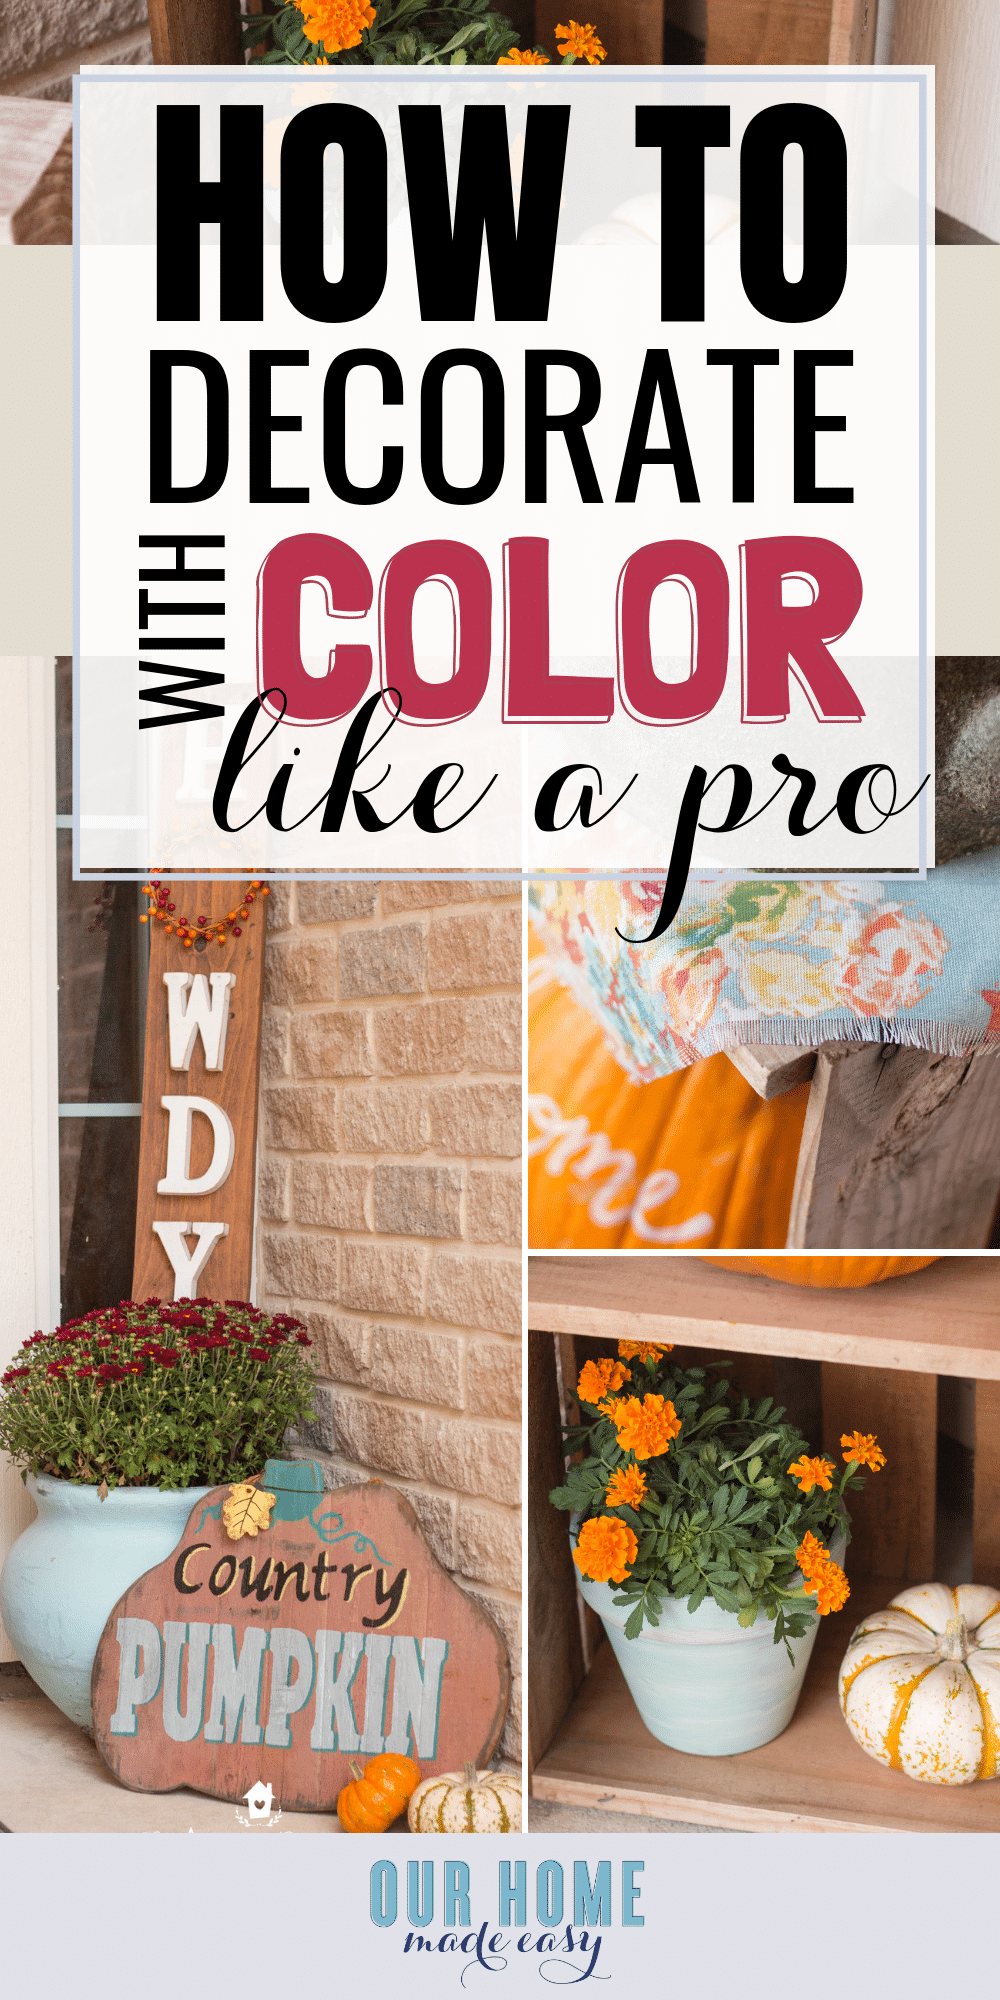 Feeling confused about adding color? Here are 6 easy ways to decorate your front porch with color! Click to see all the tricks to making it look great! #fall #homedecor #frontporch #home #fall #homedecorideas #decoratingideas